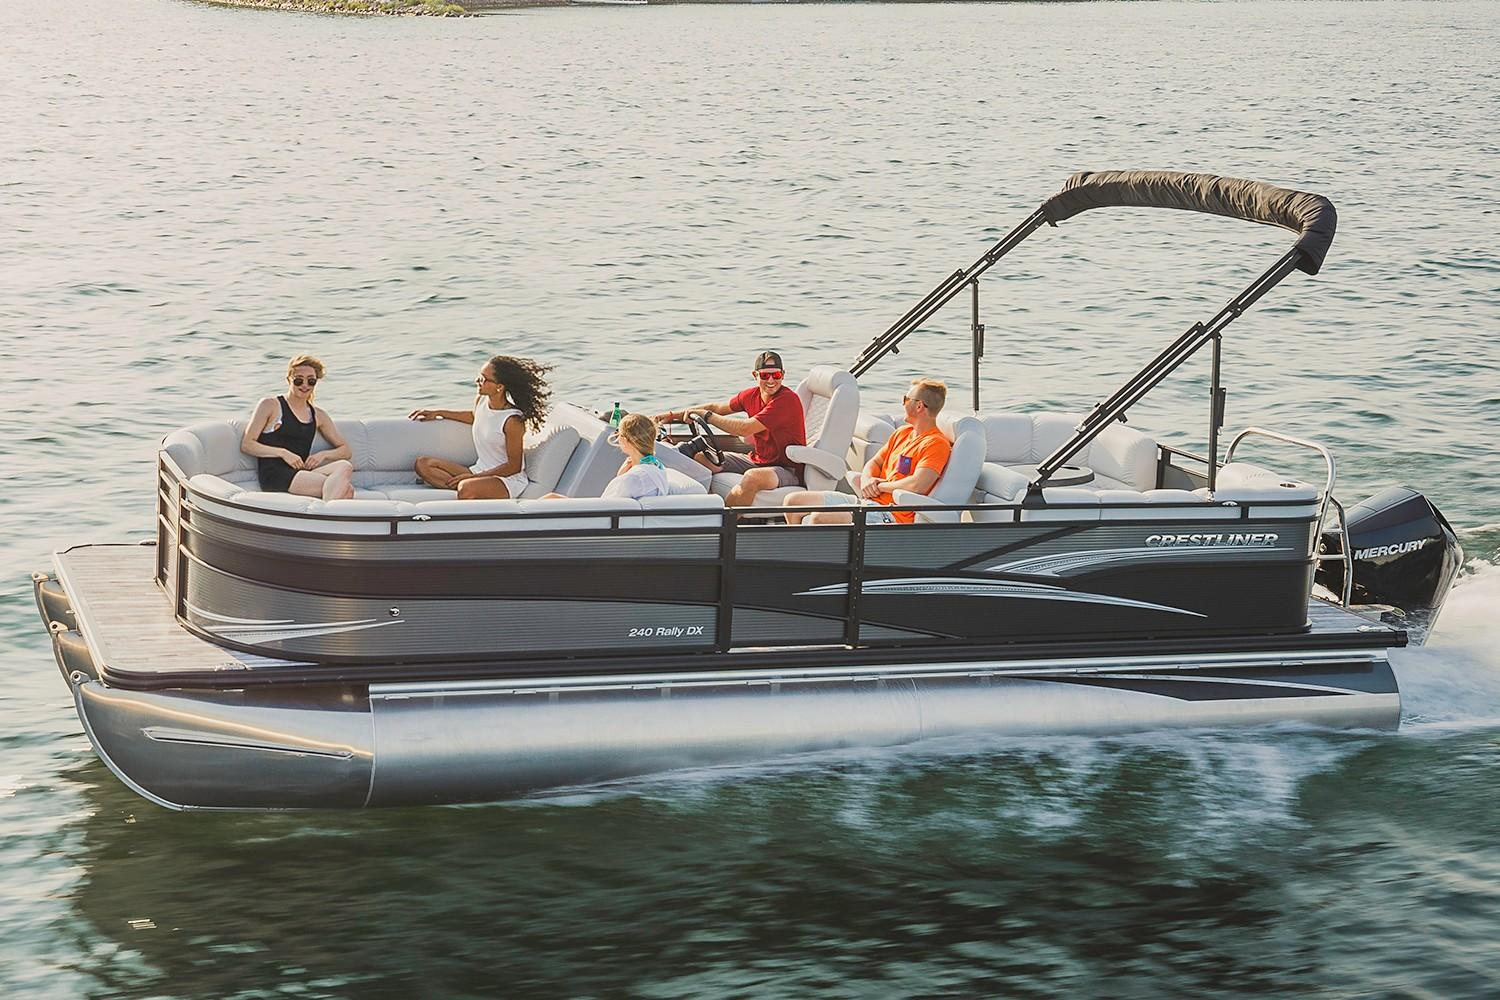 2019 Crestliner 240 Rally DX CS in Kaukauna, Wisconsin - Photo 1